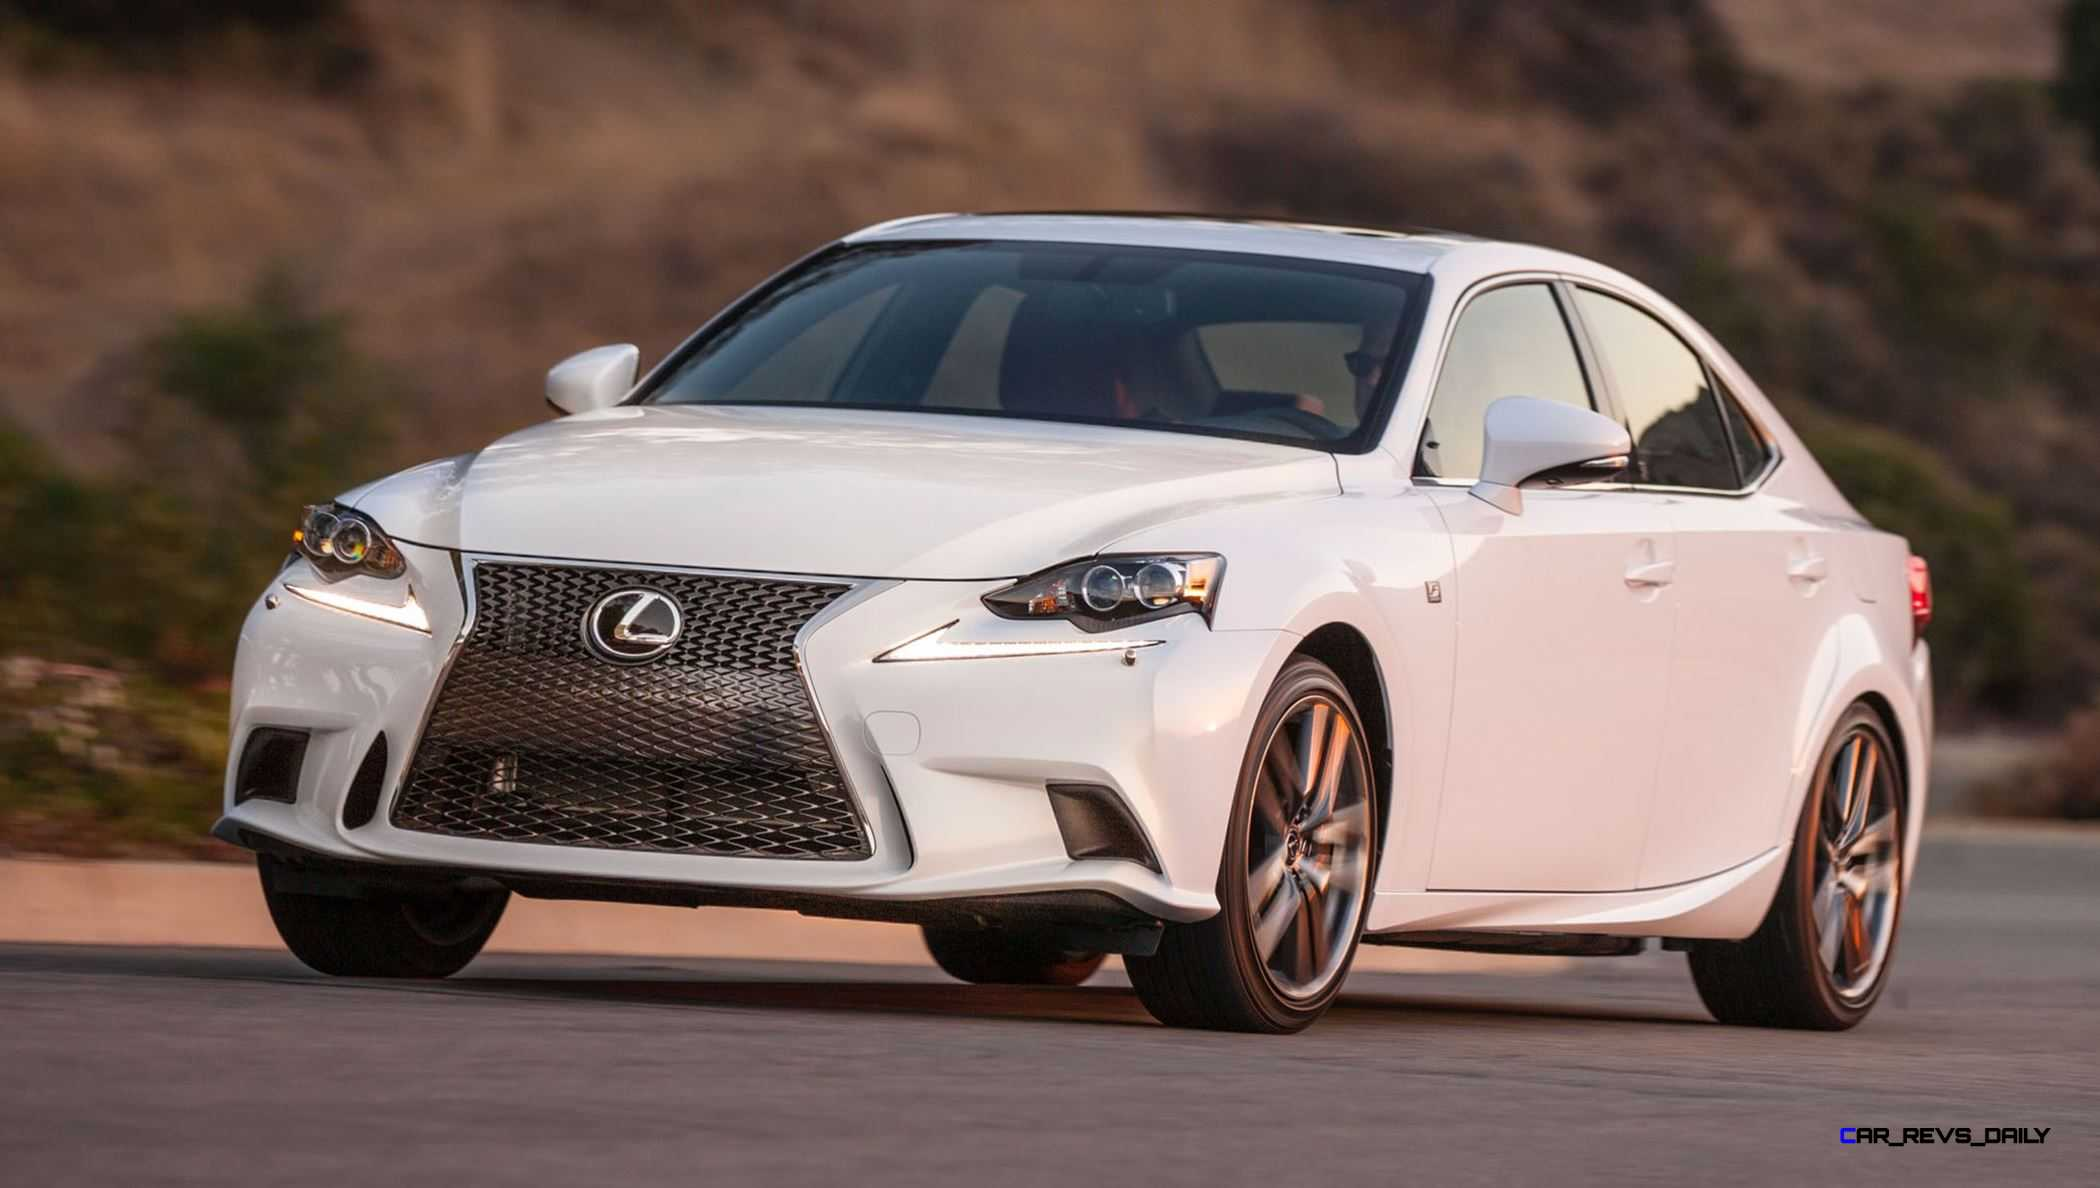 2016 lexus is200t and is300 awd join refreshed range with f sport packs